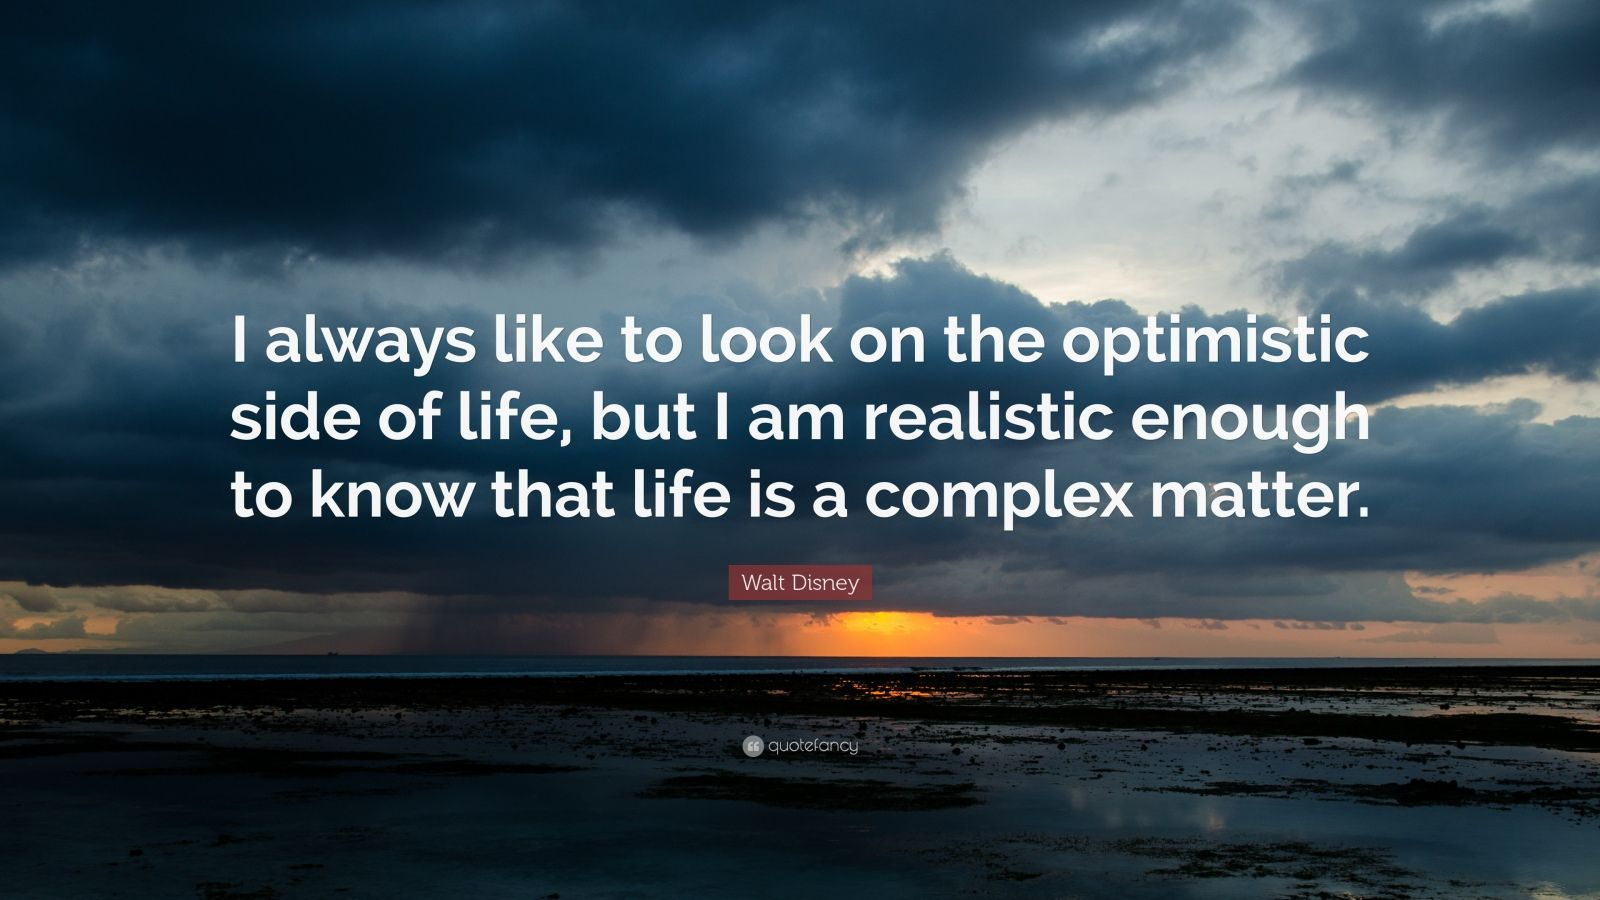 """Walt Disney Quote: """"I always like to look on the optimistic side of life, but I am realistic enough to know that life is a complex matter."""""""